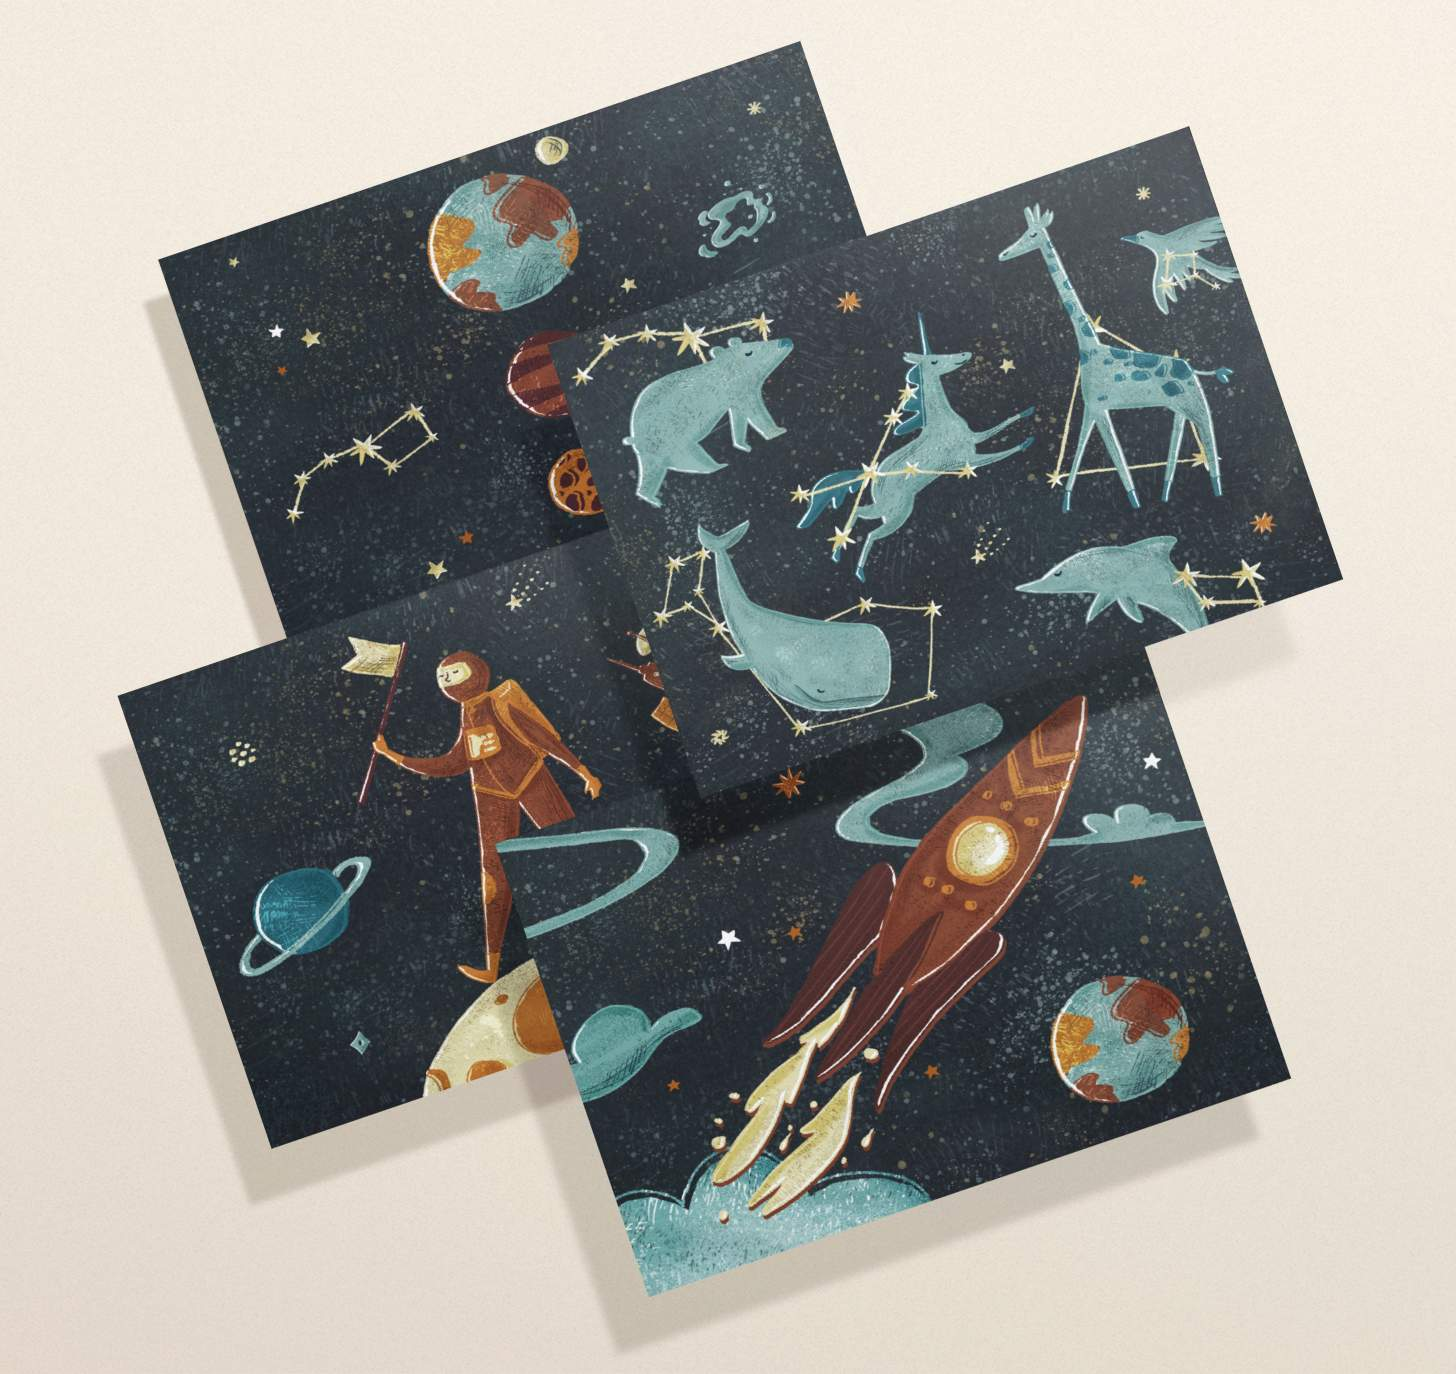 Four overlapping space cards featuring man on the moon, constellations, rocket ship, and solar system designs